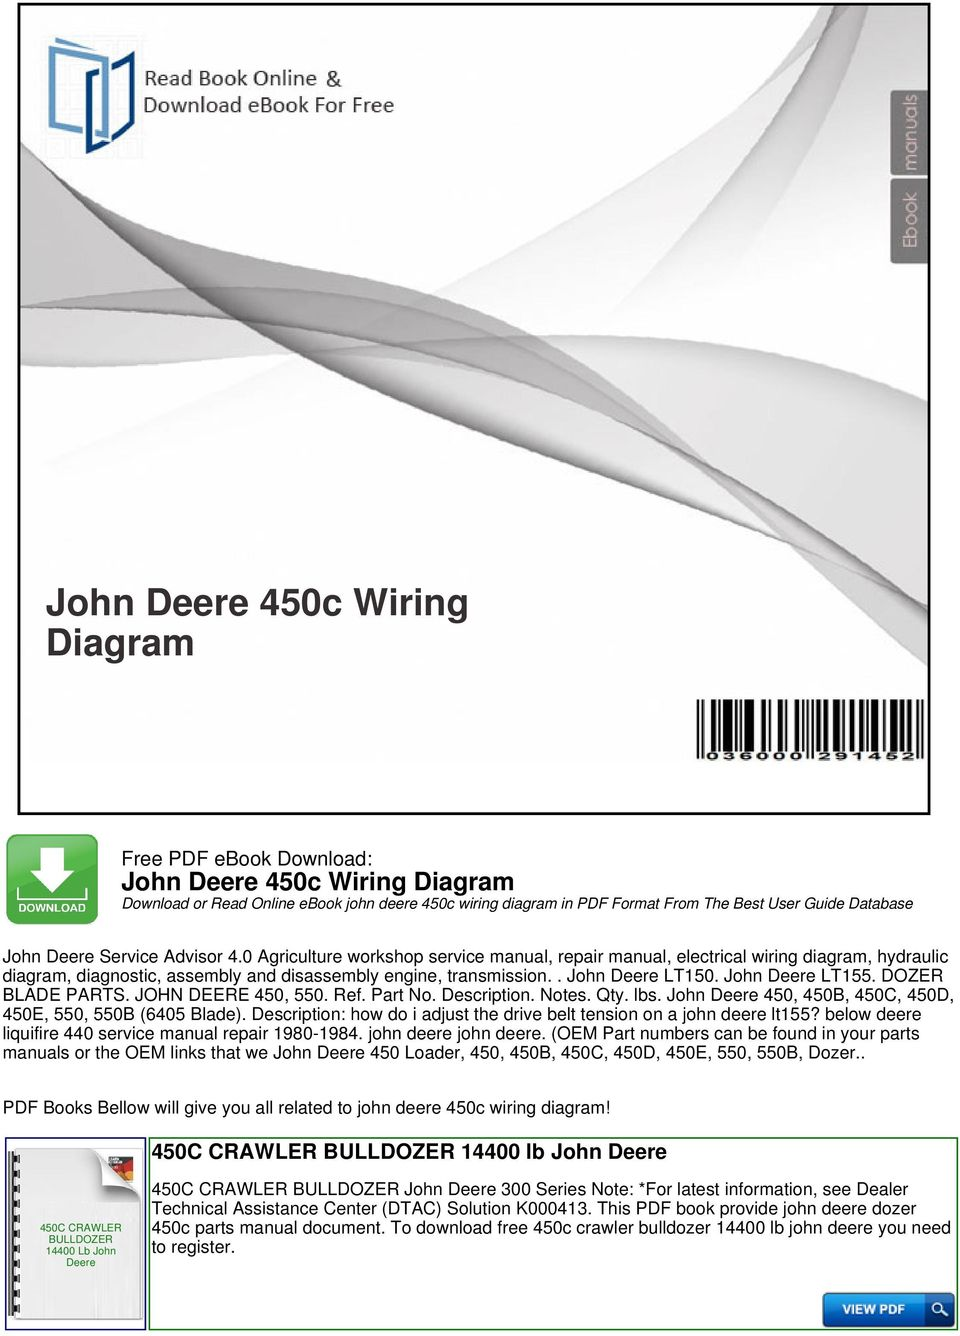 John Deere 450c Wiring Diagram Pdf Free Image About On Vw Golf Front Suspension Dozer Blade Parts 450 550 Ref Part No Description